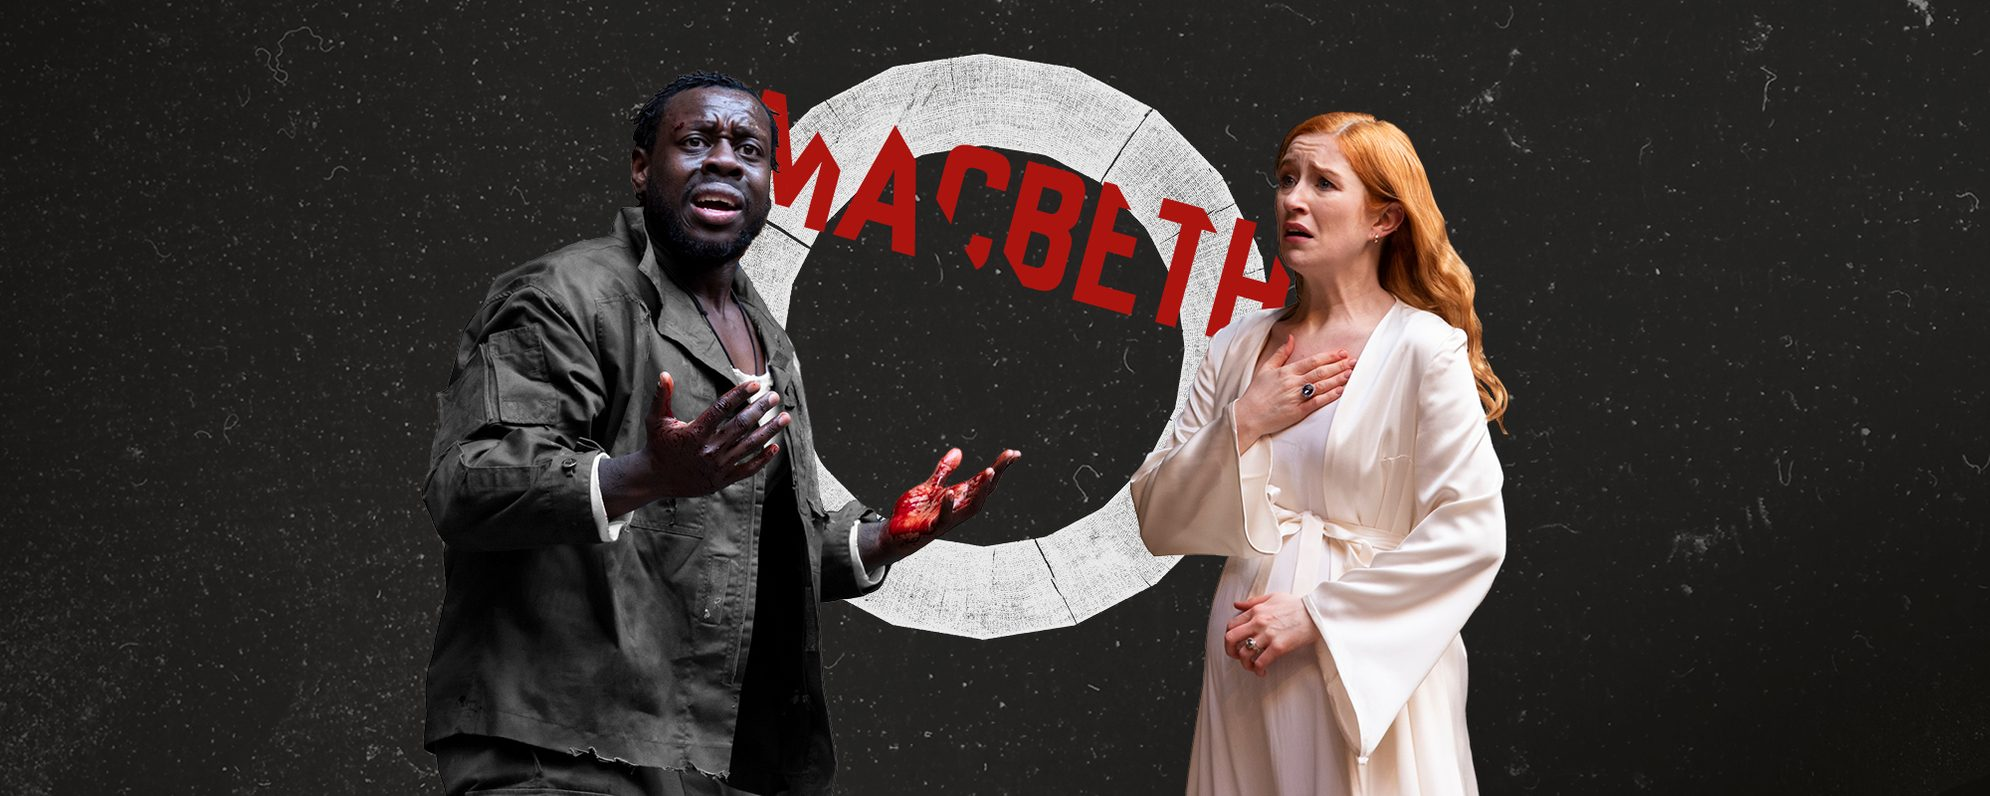 The title Macbeth is in between to actors depicting Macbeth and Lady Macbeth, they both look distressed